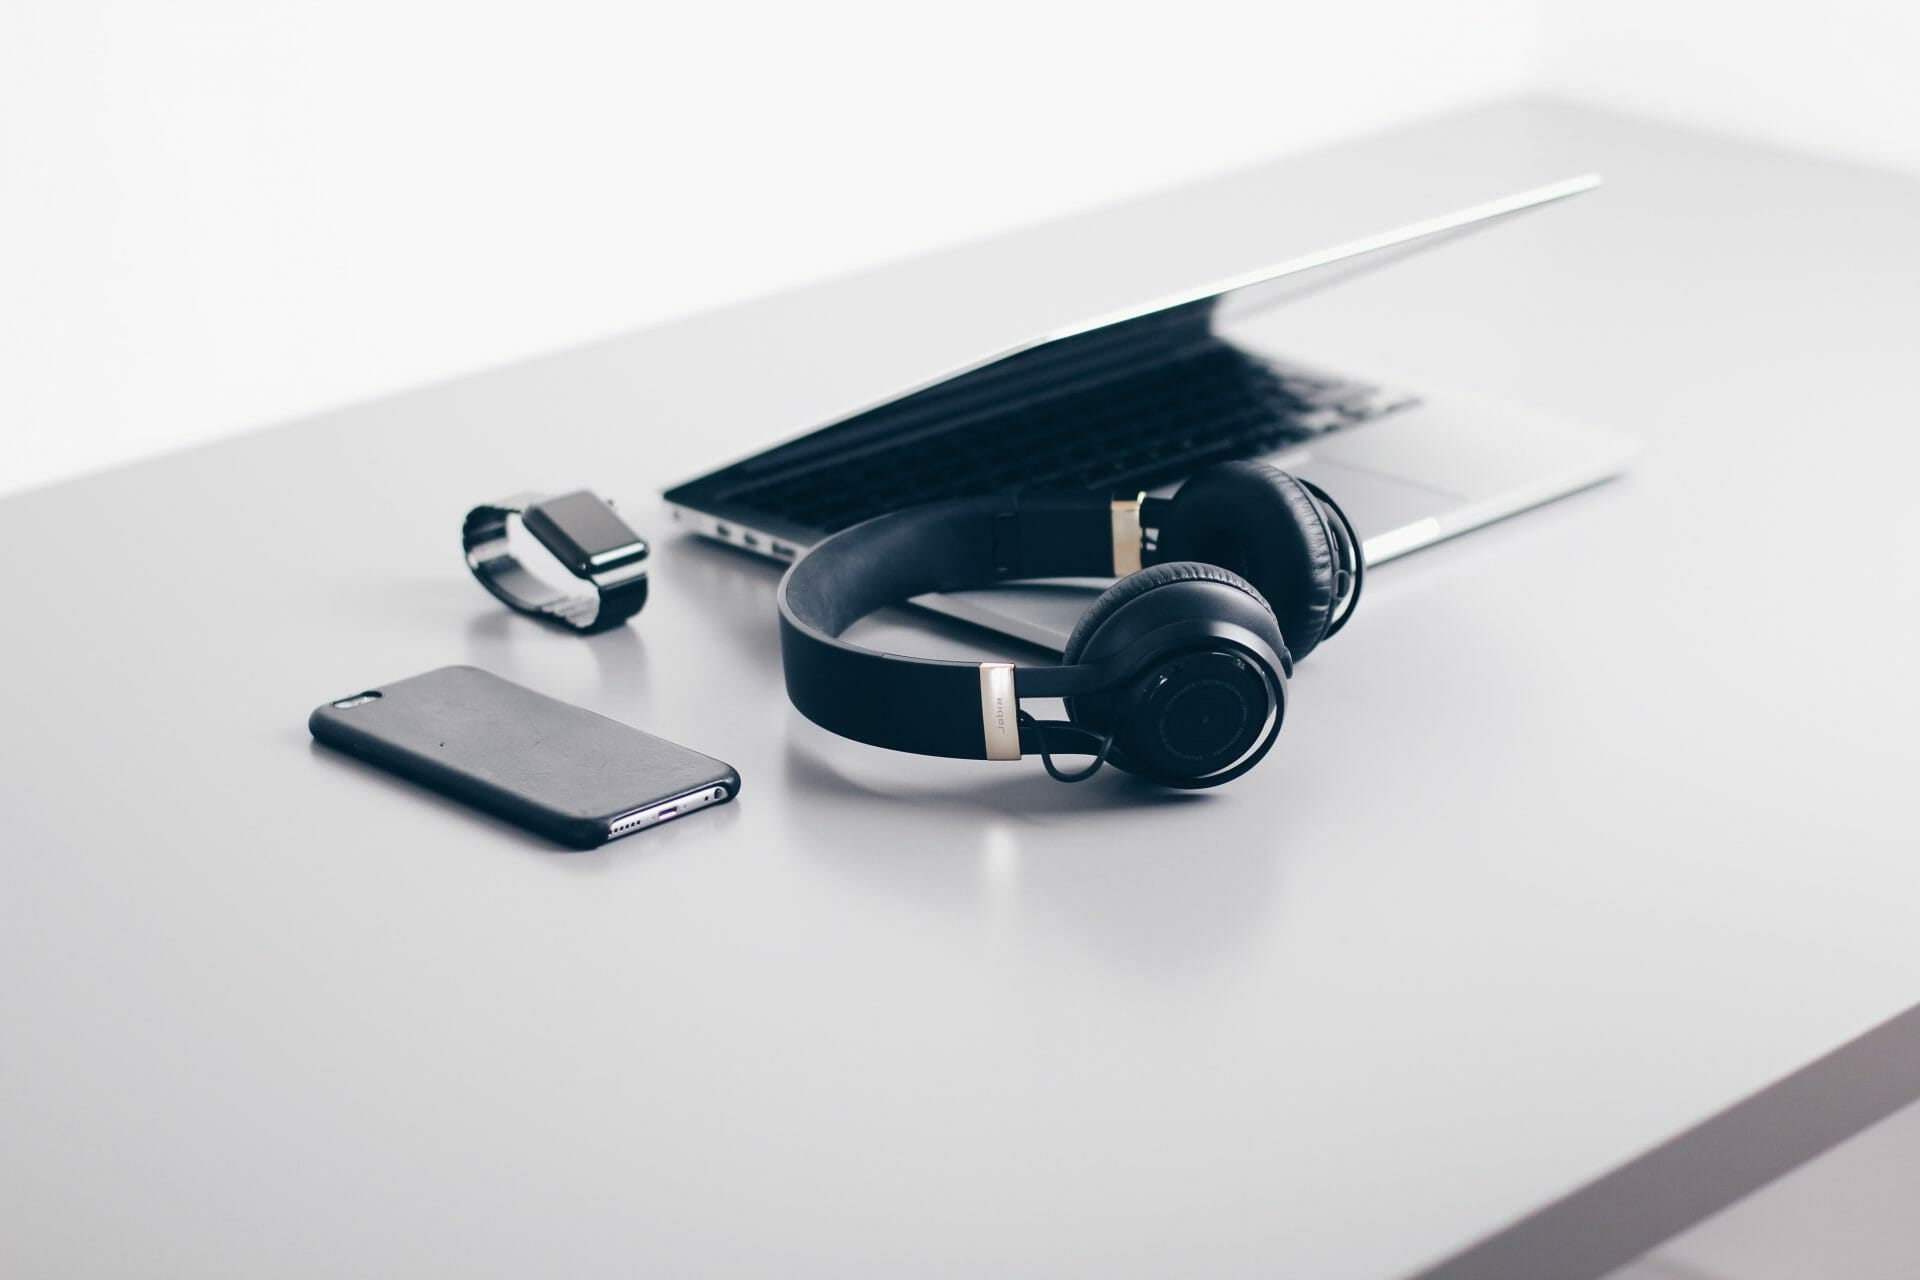 Picture of laptop, watch, iphone headphones for Real Estate News for Investors Podcast Episode #694